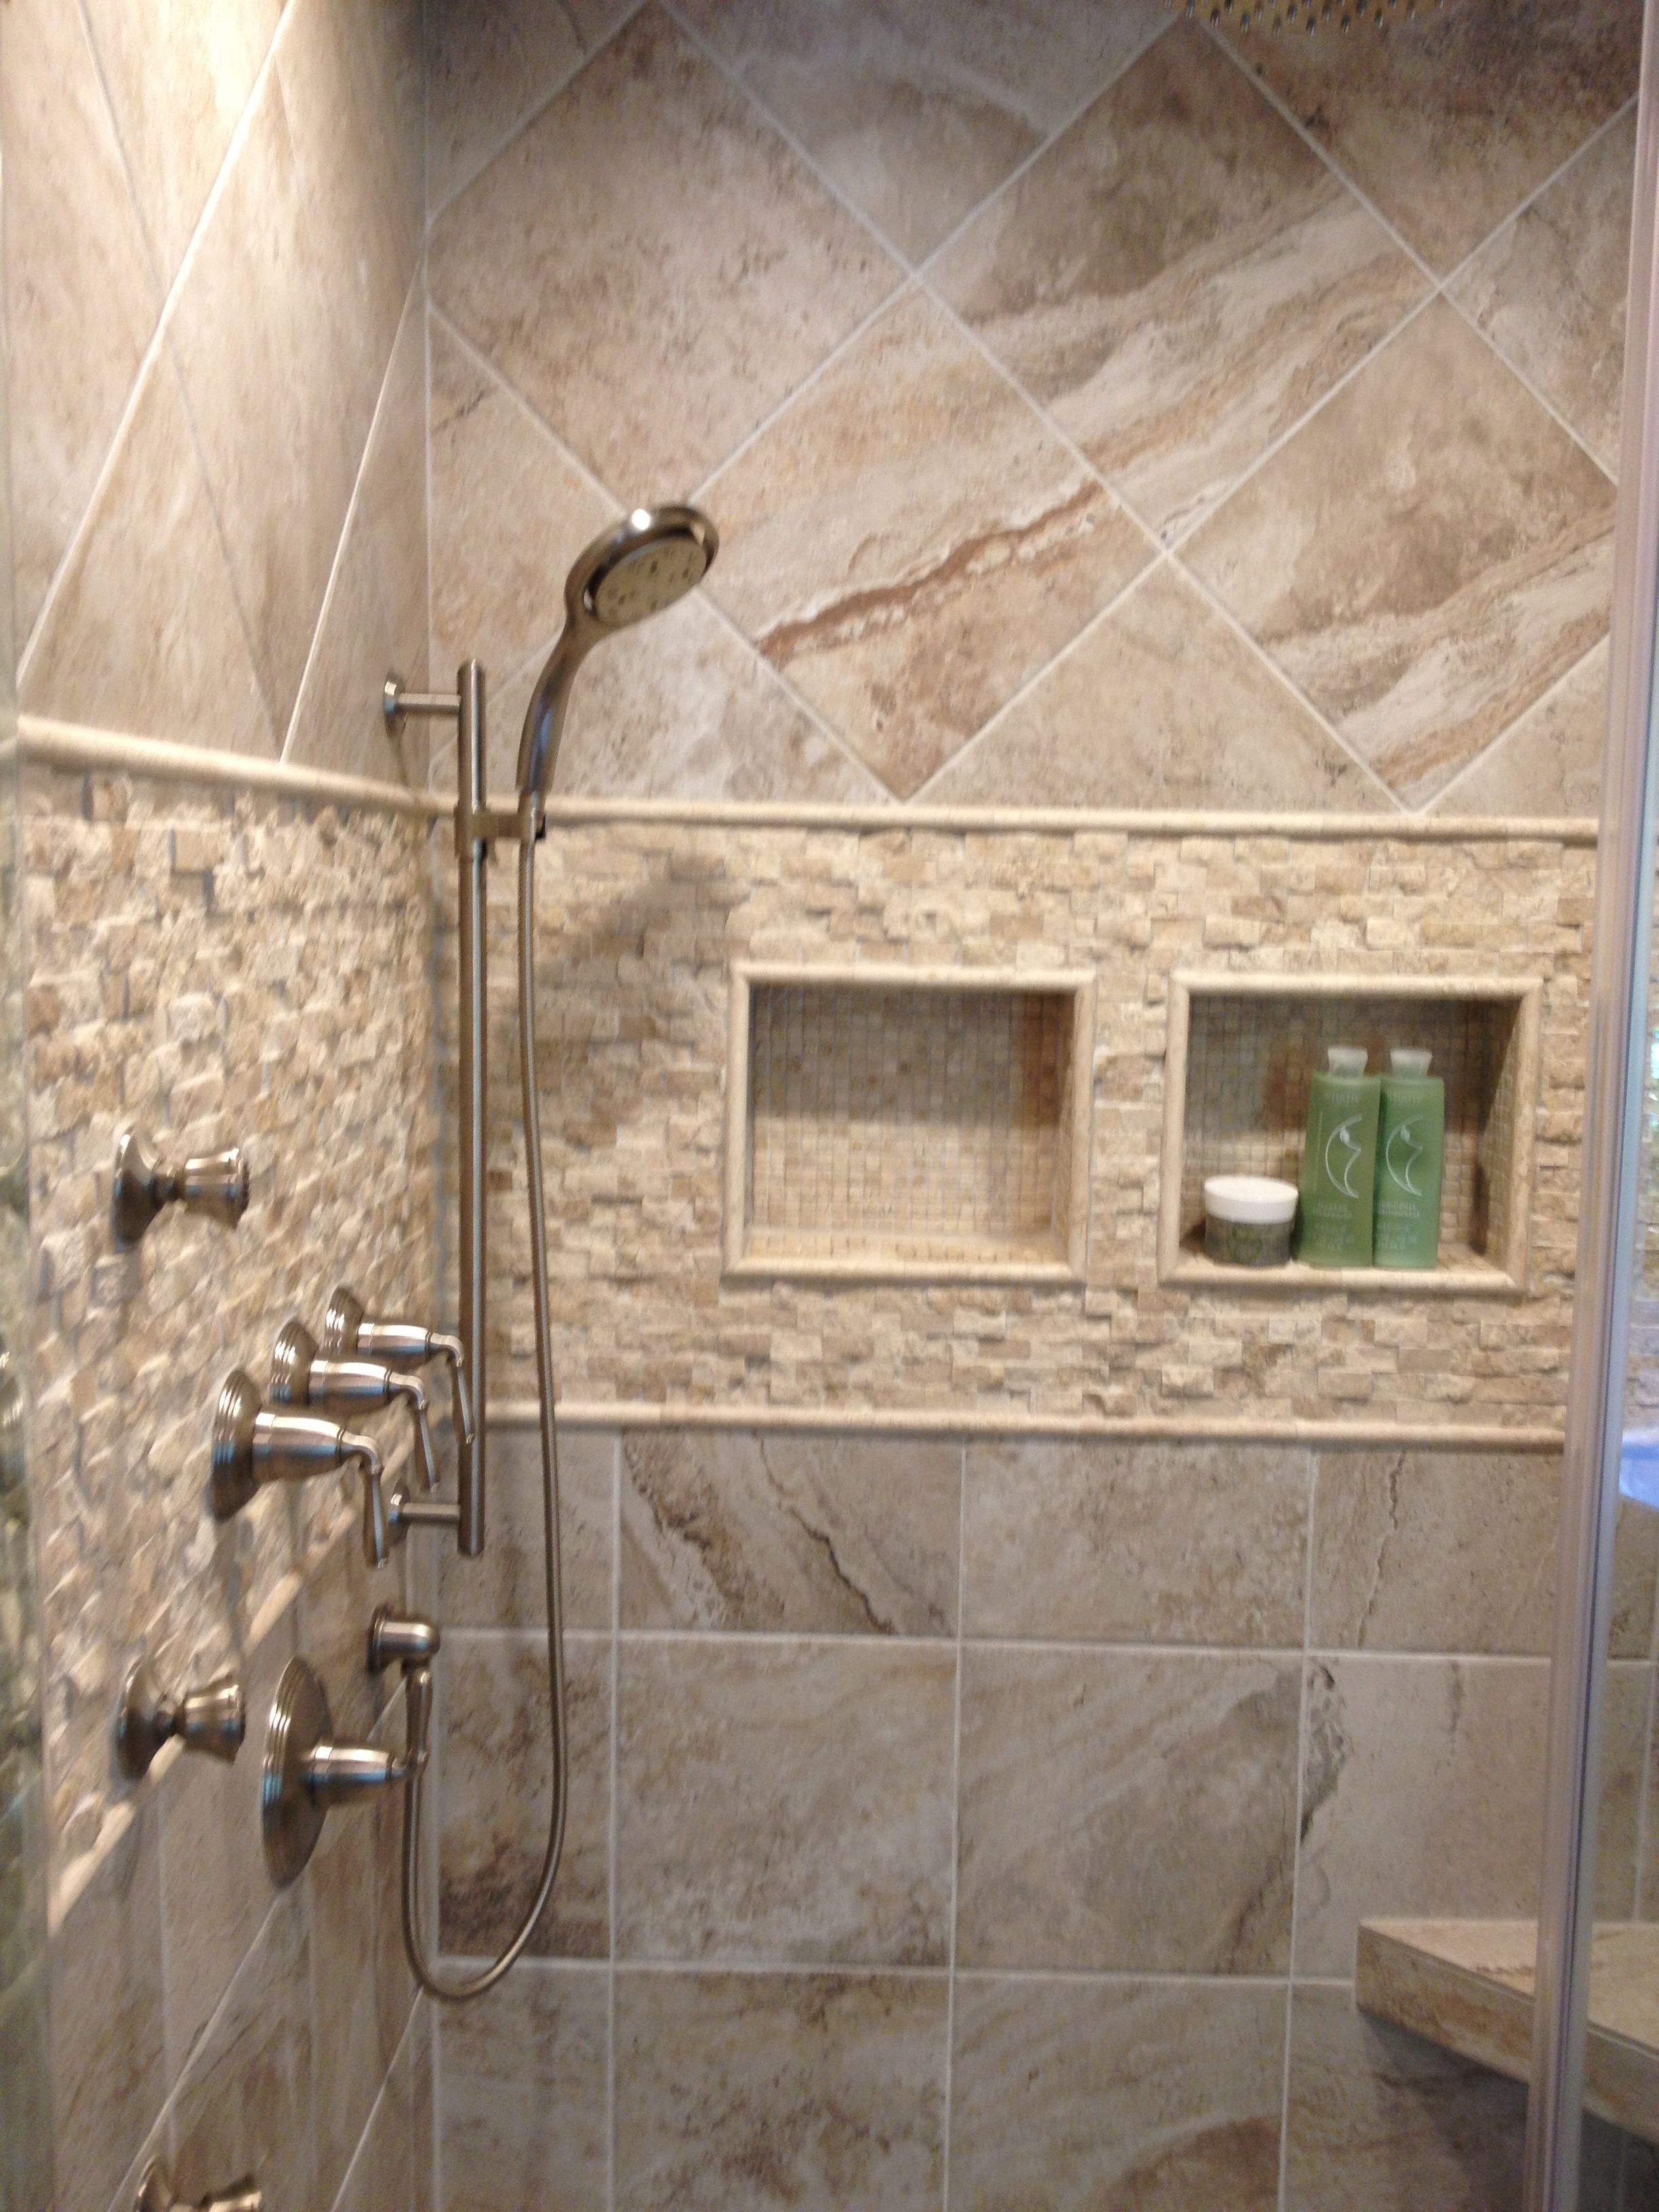 Mikonos Coral Sand Porcelain Tiles Installed In A Shower With Stone Accents Part 26